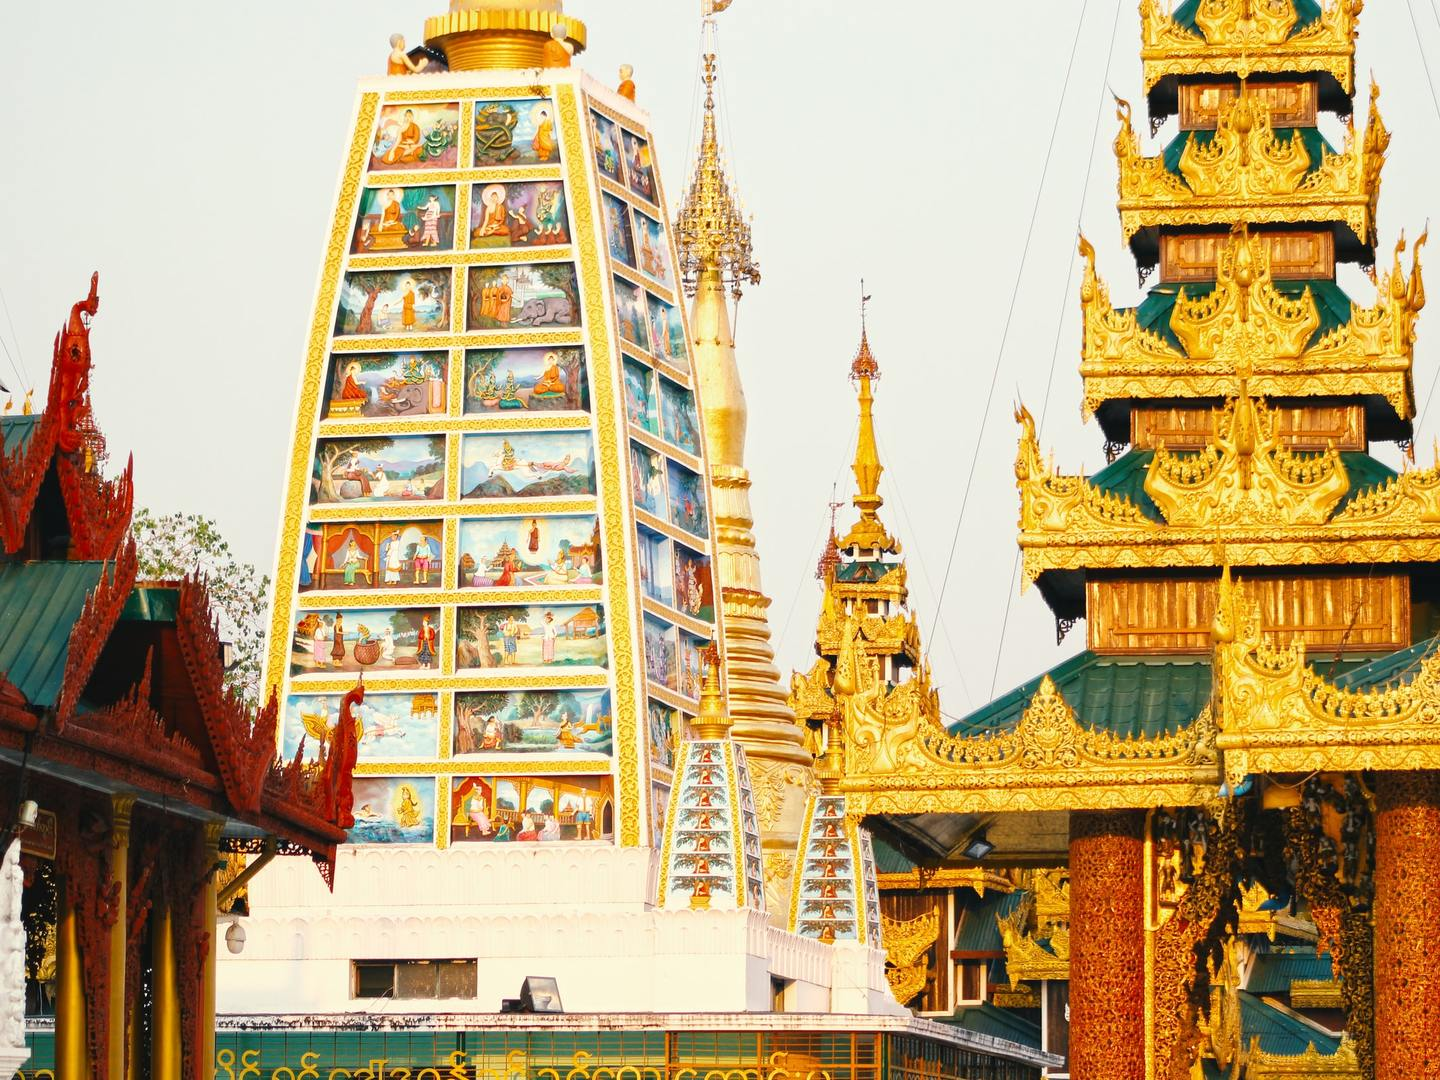 The colourful temples in Yangon, Myanmar